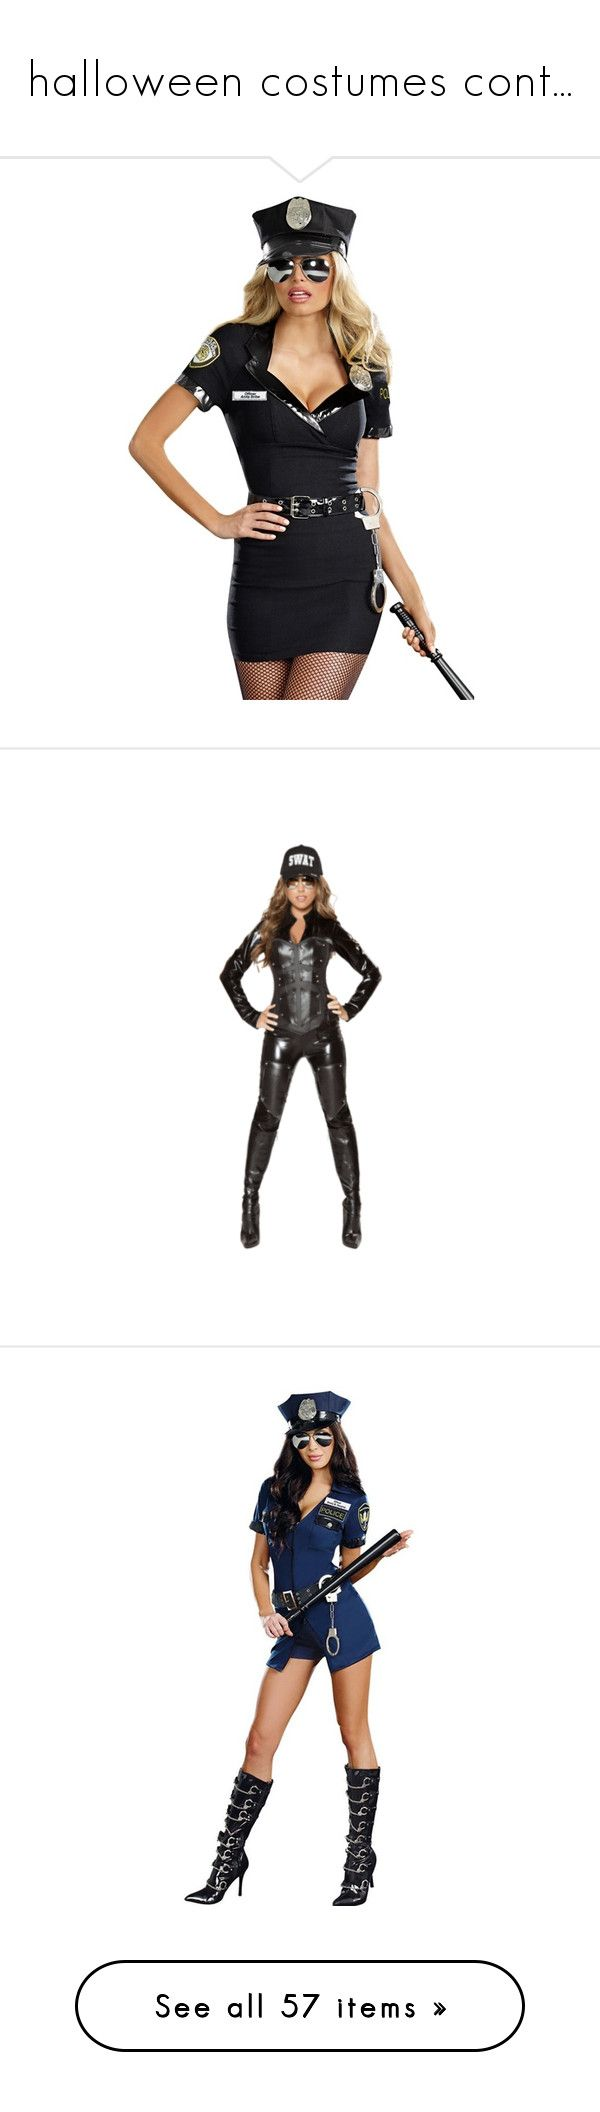 """""""halloween costumes cont..."""" by bucketlistdiary on Polyvore featuring costumes, sexy police woman costume, police woman costume, policeman costume, police woman halloween costume, police officer halloween costume, police man costume, cop halloween costume, sexy police officer halloween costume and white costume"""